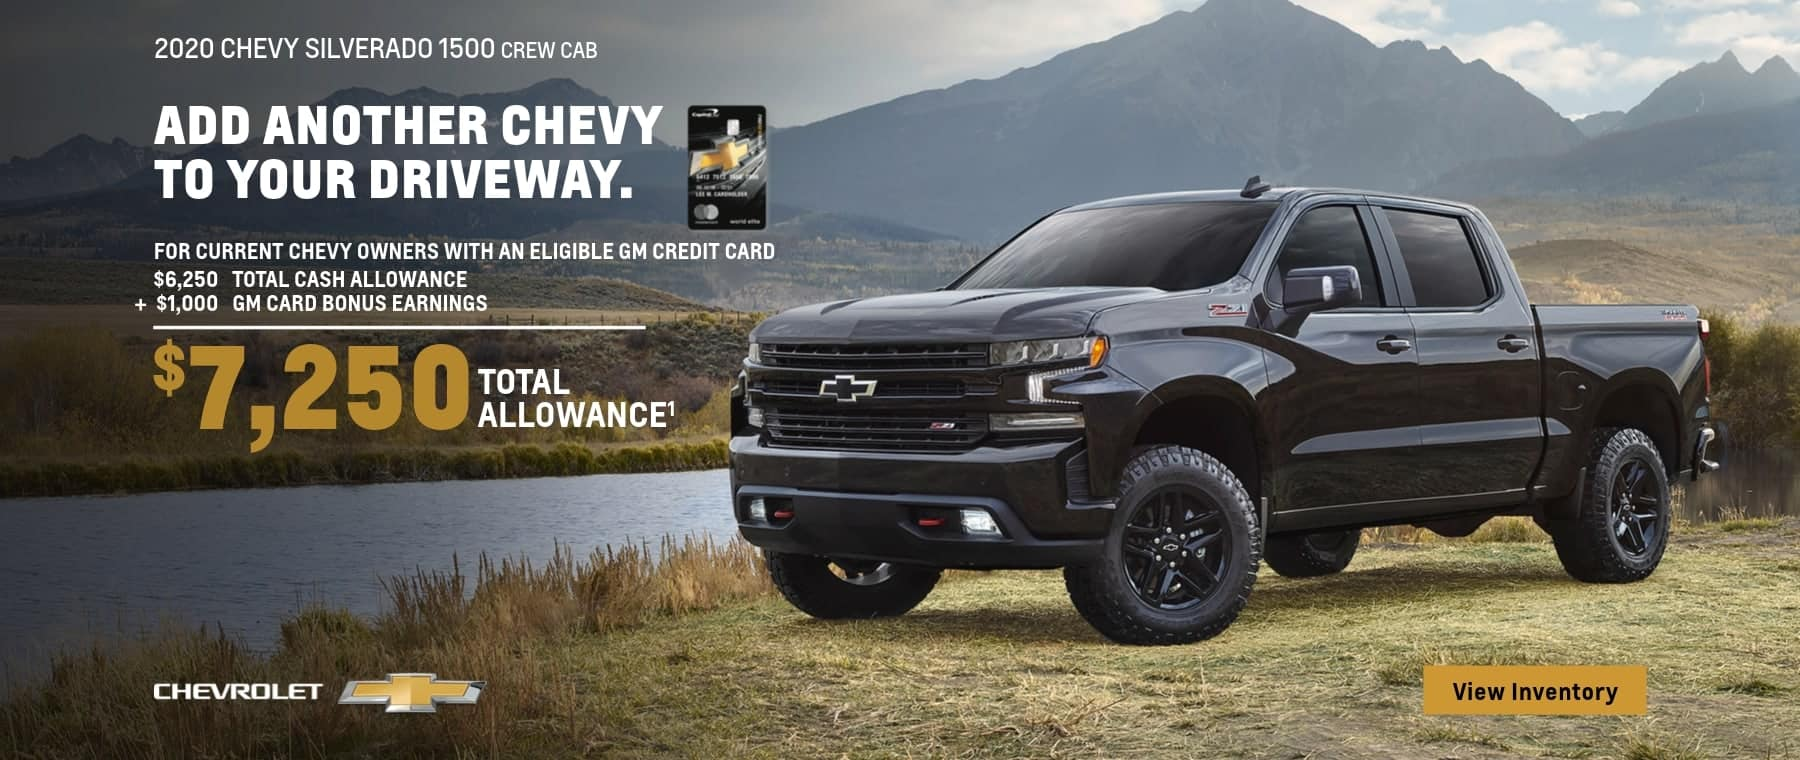 2020 Chevy Silverado 1500 Crew Cab For current Chevy owners with an eligible GM credit card. $6,250 Total Cash allowance plus $1,000 GM Card bonus earnings. That's $7,250 total cash allowance.